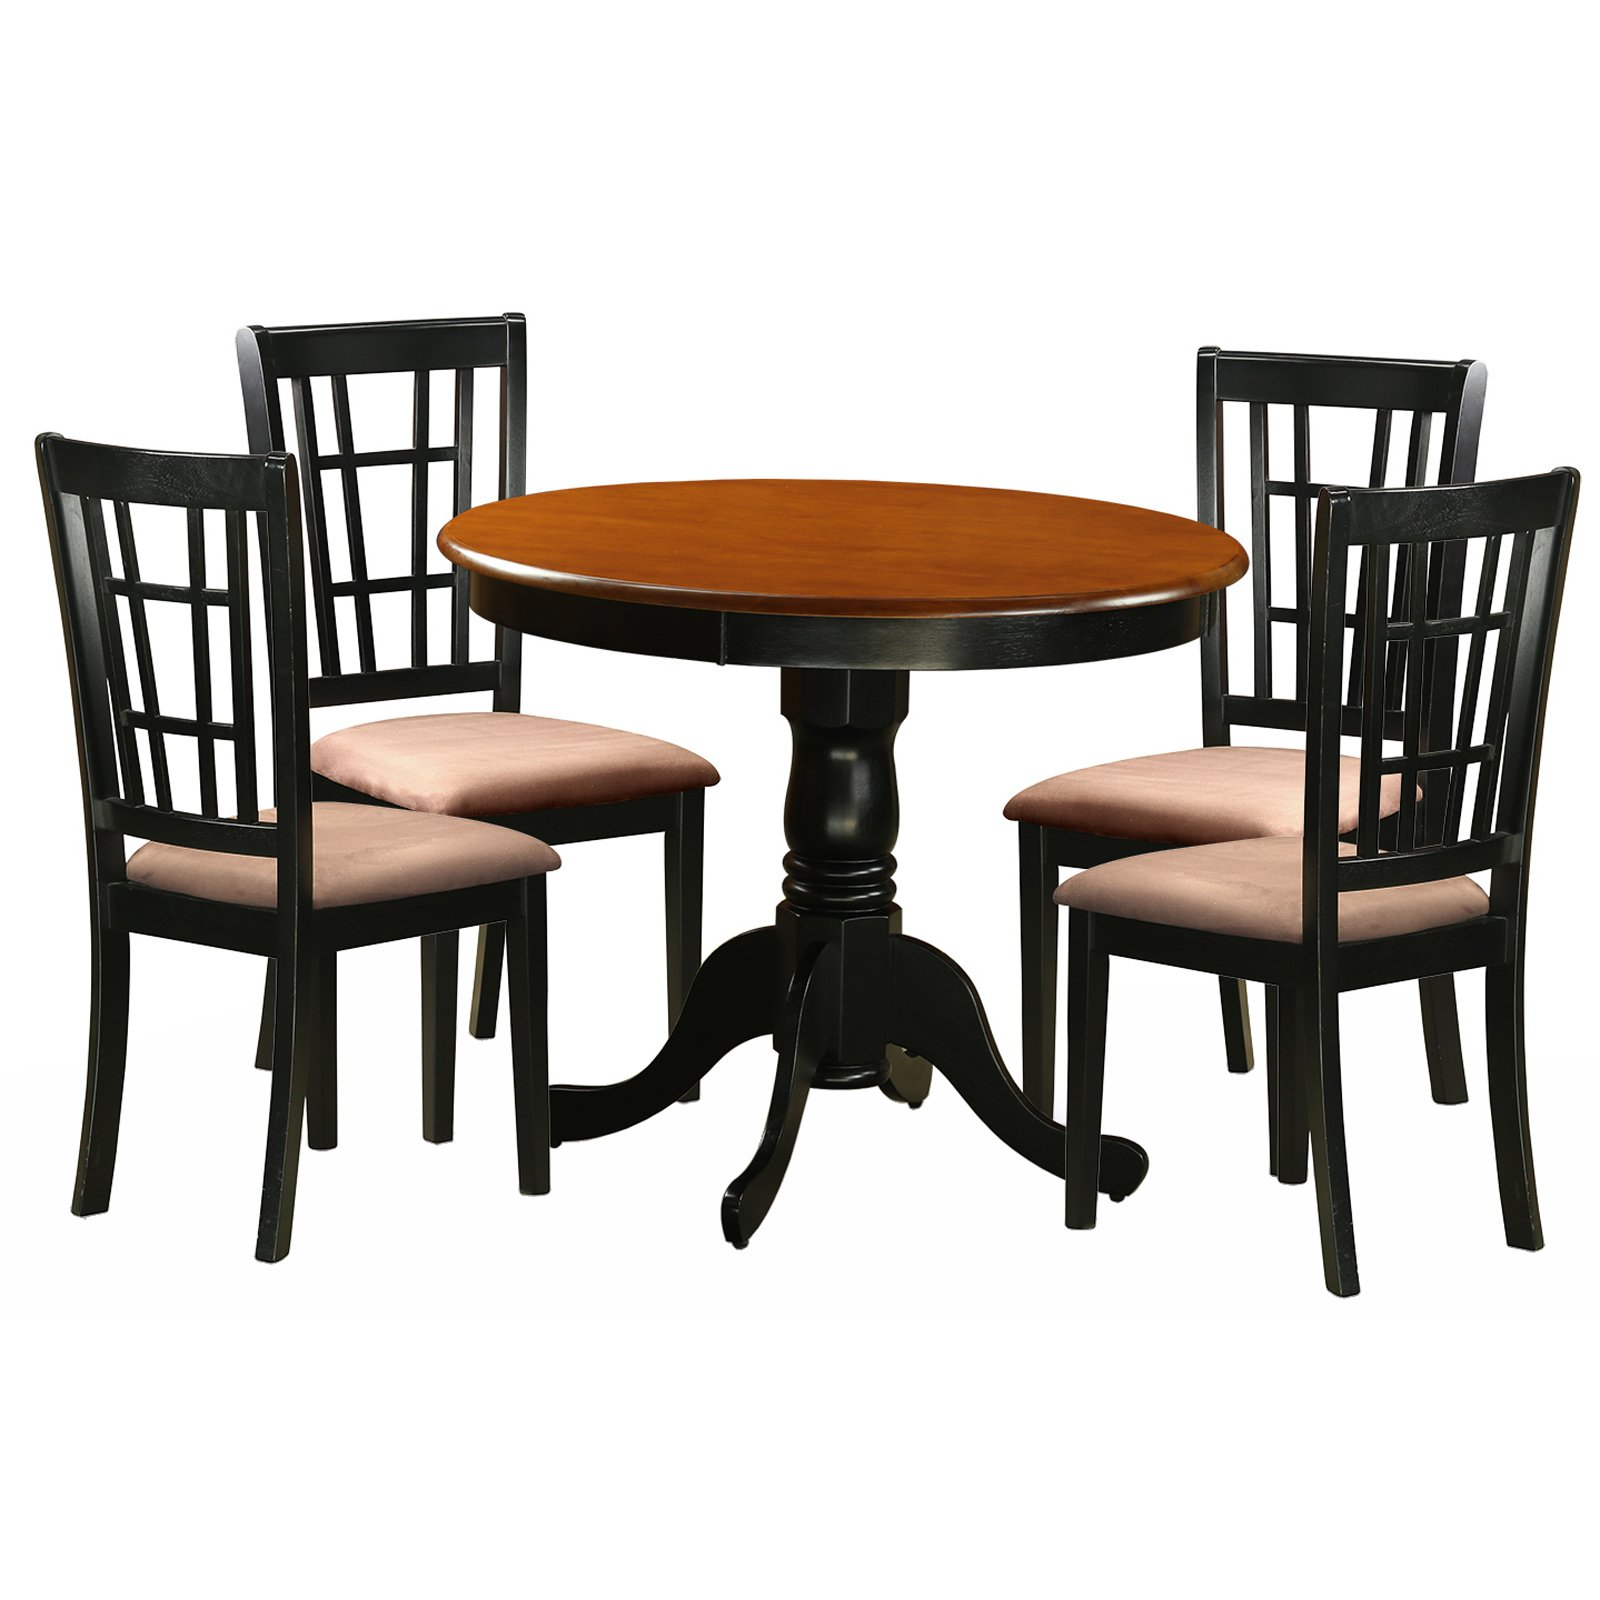 East West Furniture Antique 5 Piece Pedestal Round Dining Table Set with Nicoli Microfiber Seat Chairs